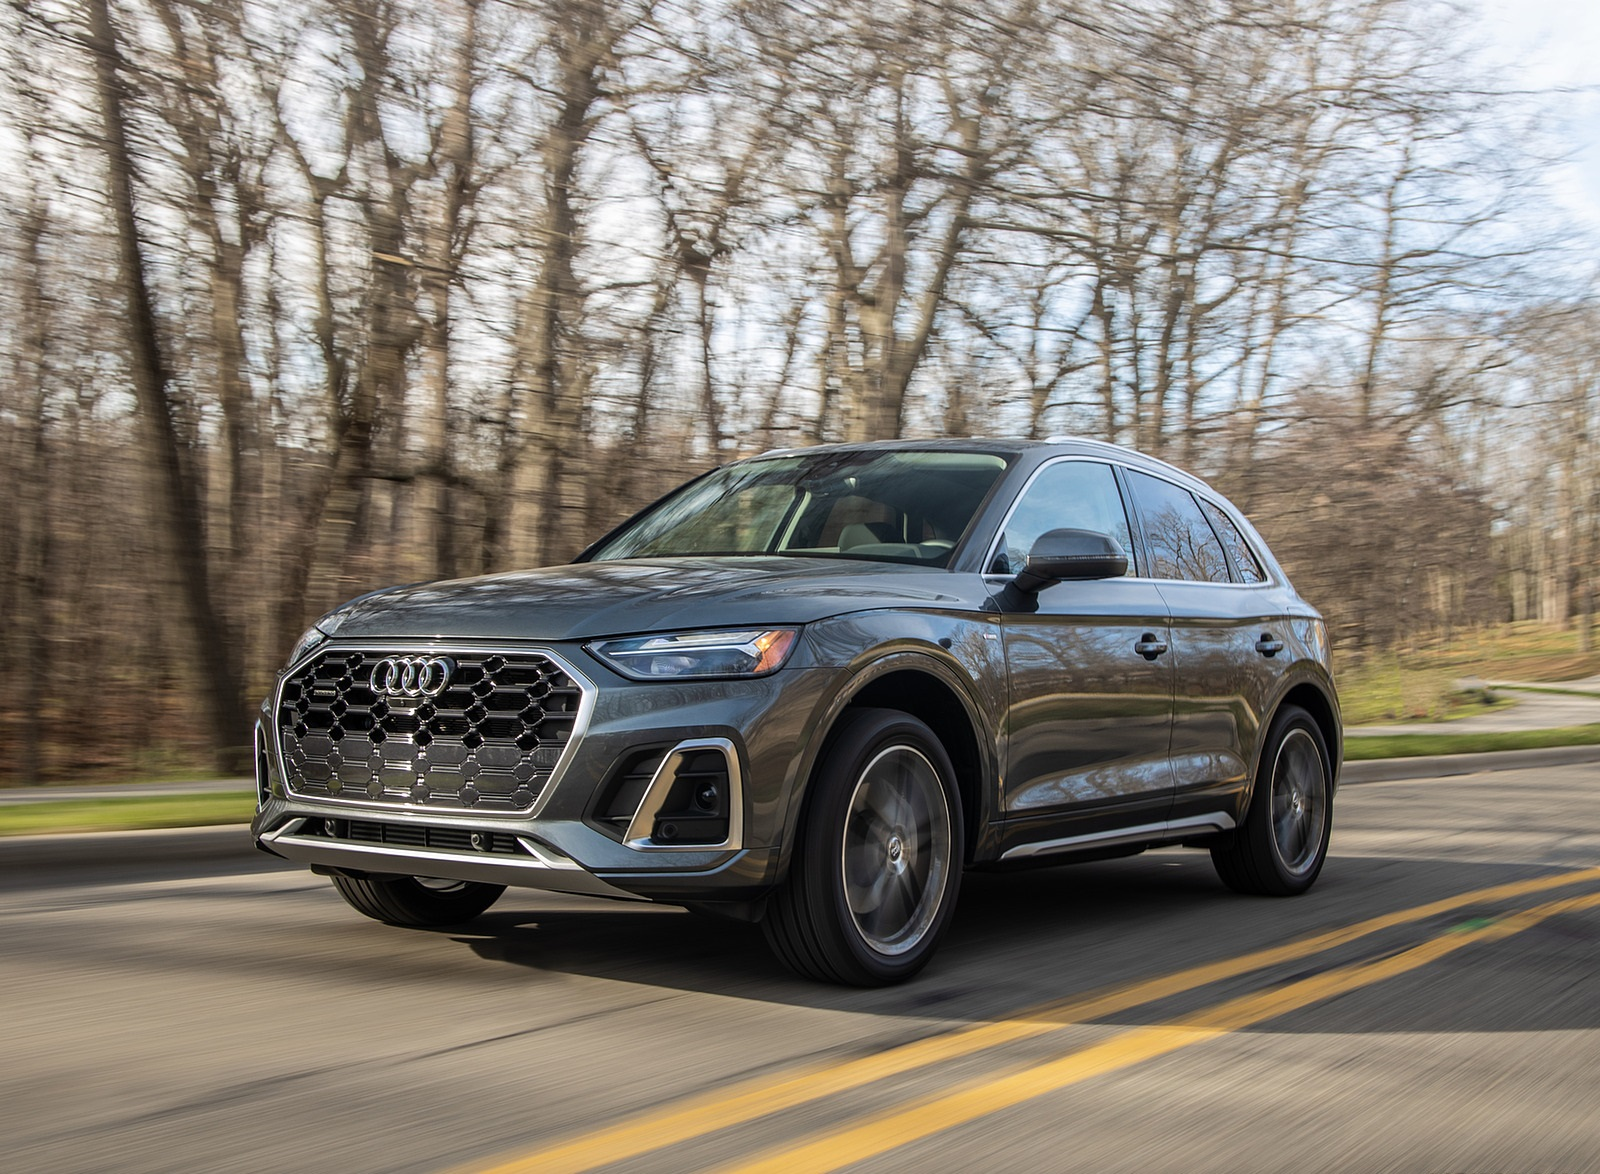 2021 Audi Q5 55 TFSI e quattro PHEV (US-Spec) Front Three-Quarter Wallpapers (2)